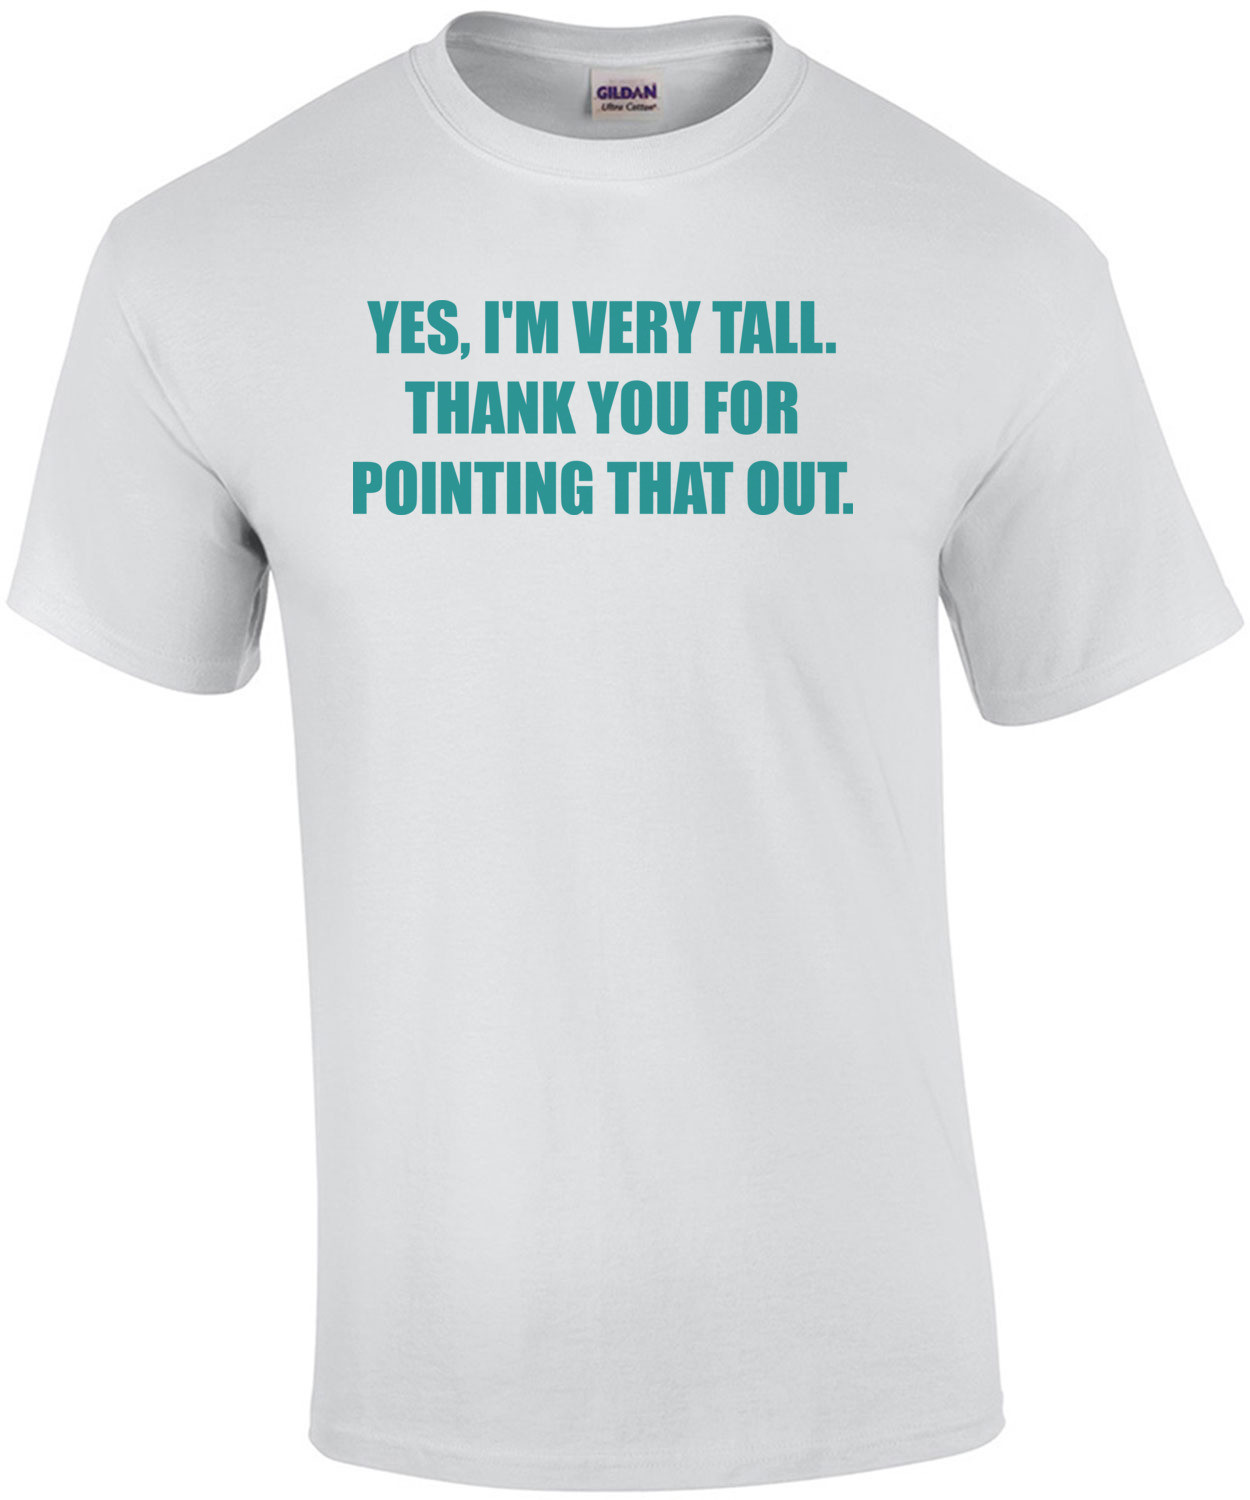 YES, I'M VERY TALL. THANK YOU FOR POINTING THAT OUT. Shirt